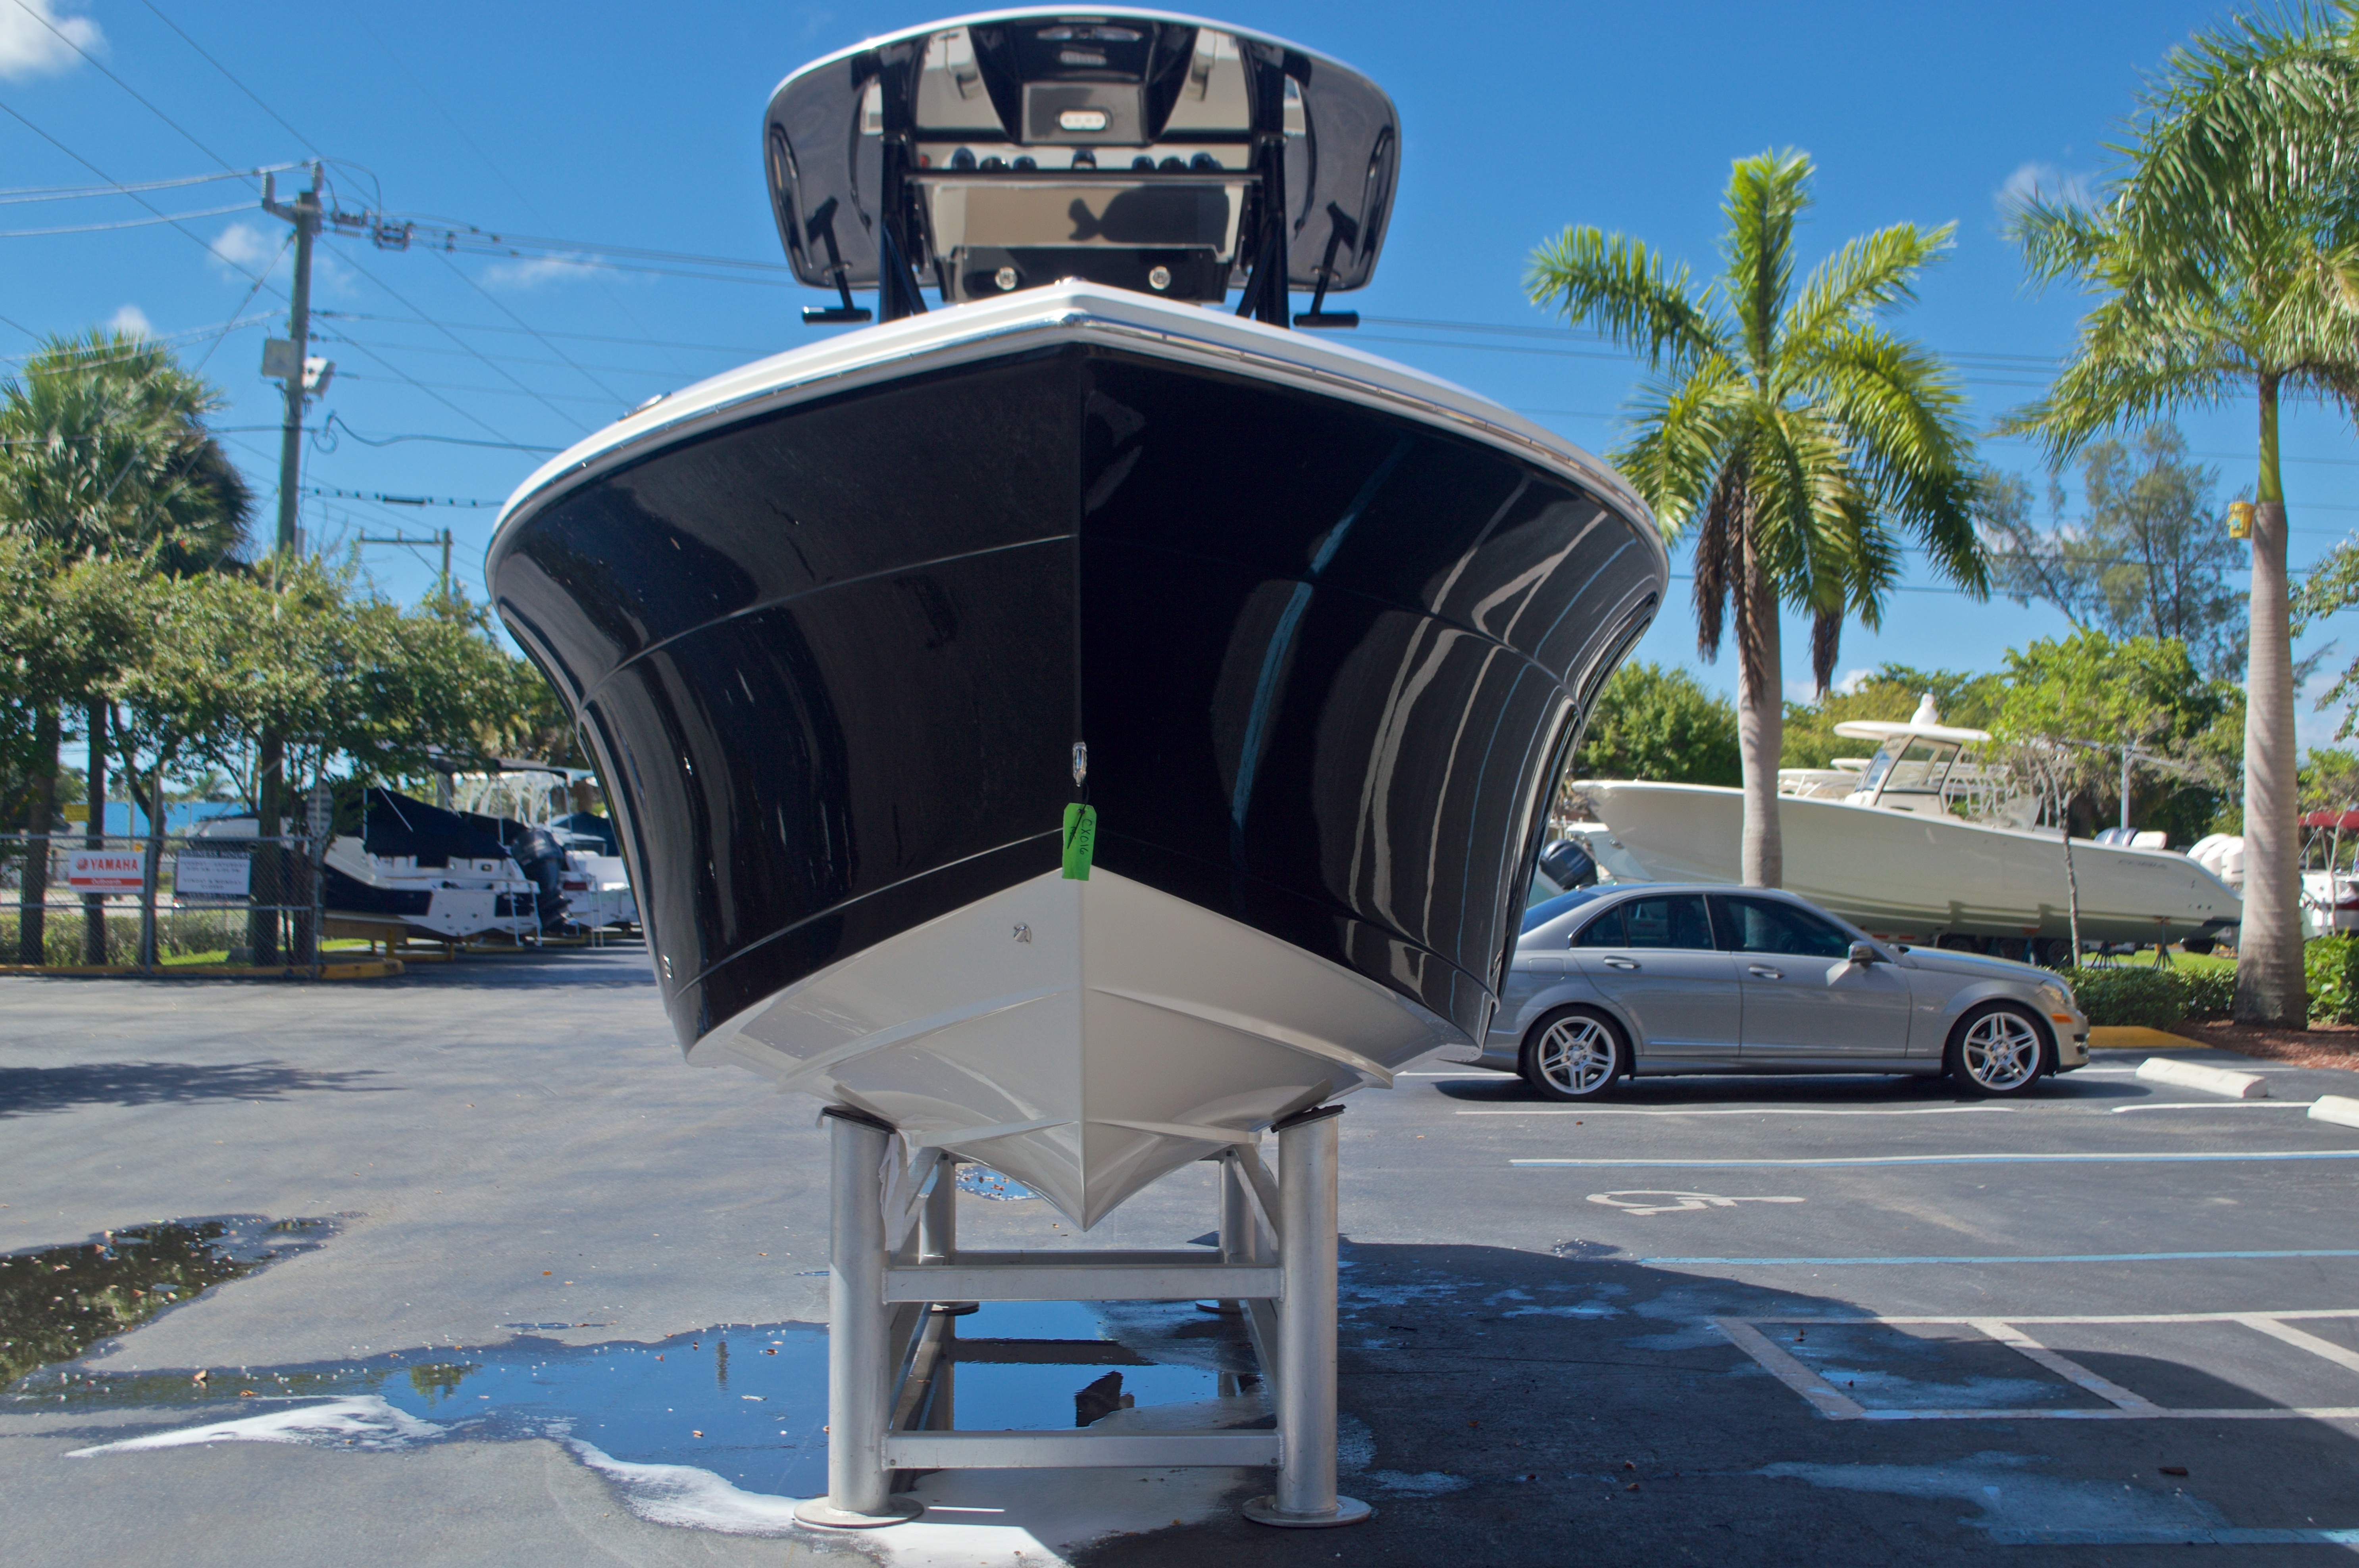 Thumbnail 2 for New 2017 Cobia 220 Center Console boat for sale in Vero Beach, FL